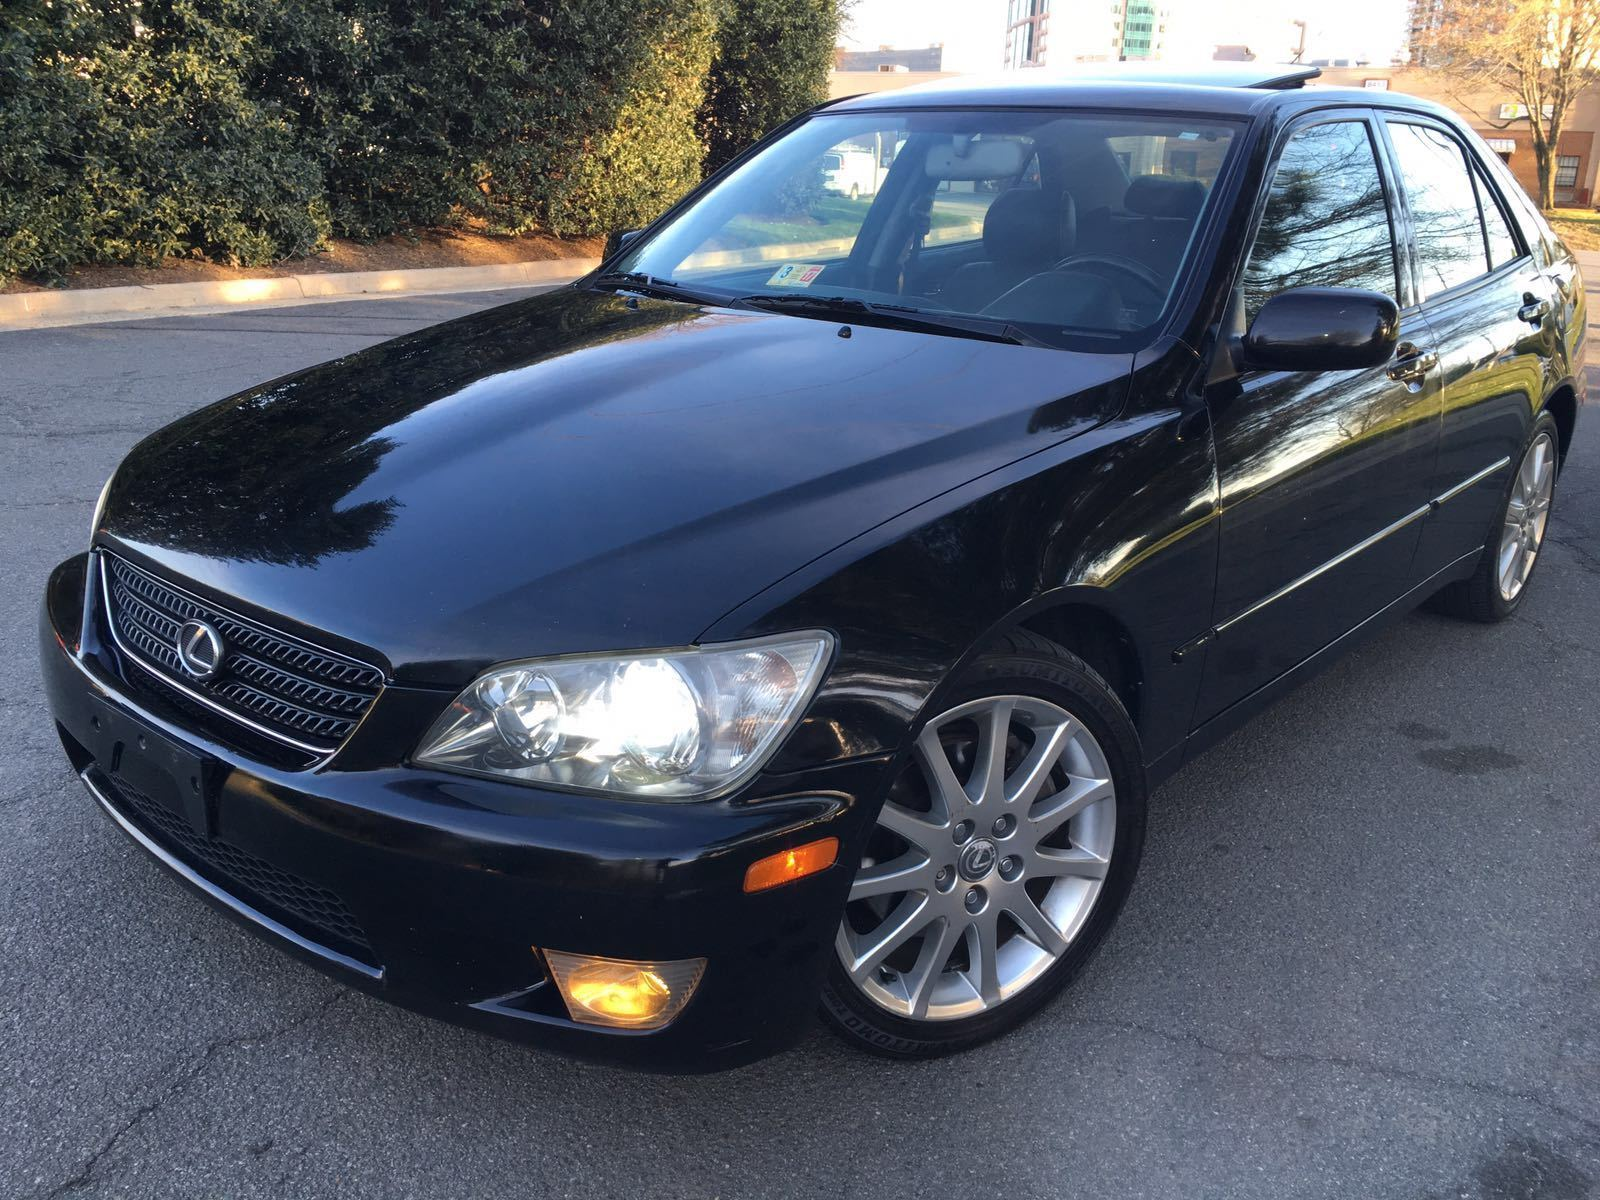 daily turismo auction watch 2005 lexus is300. Black Bedroom Furniture Sets. Home Design Ideas